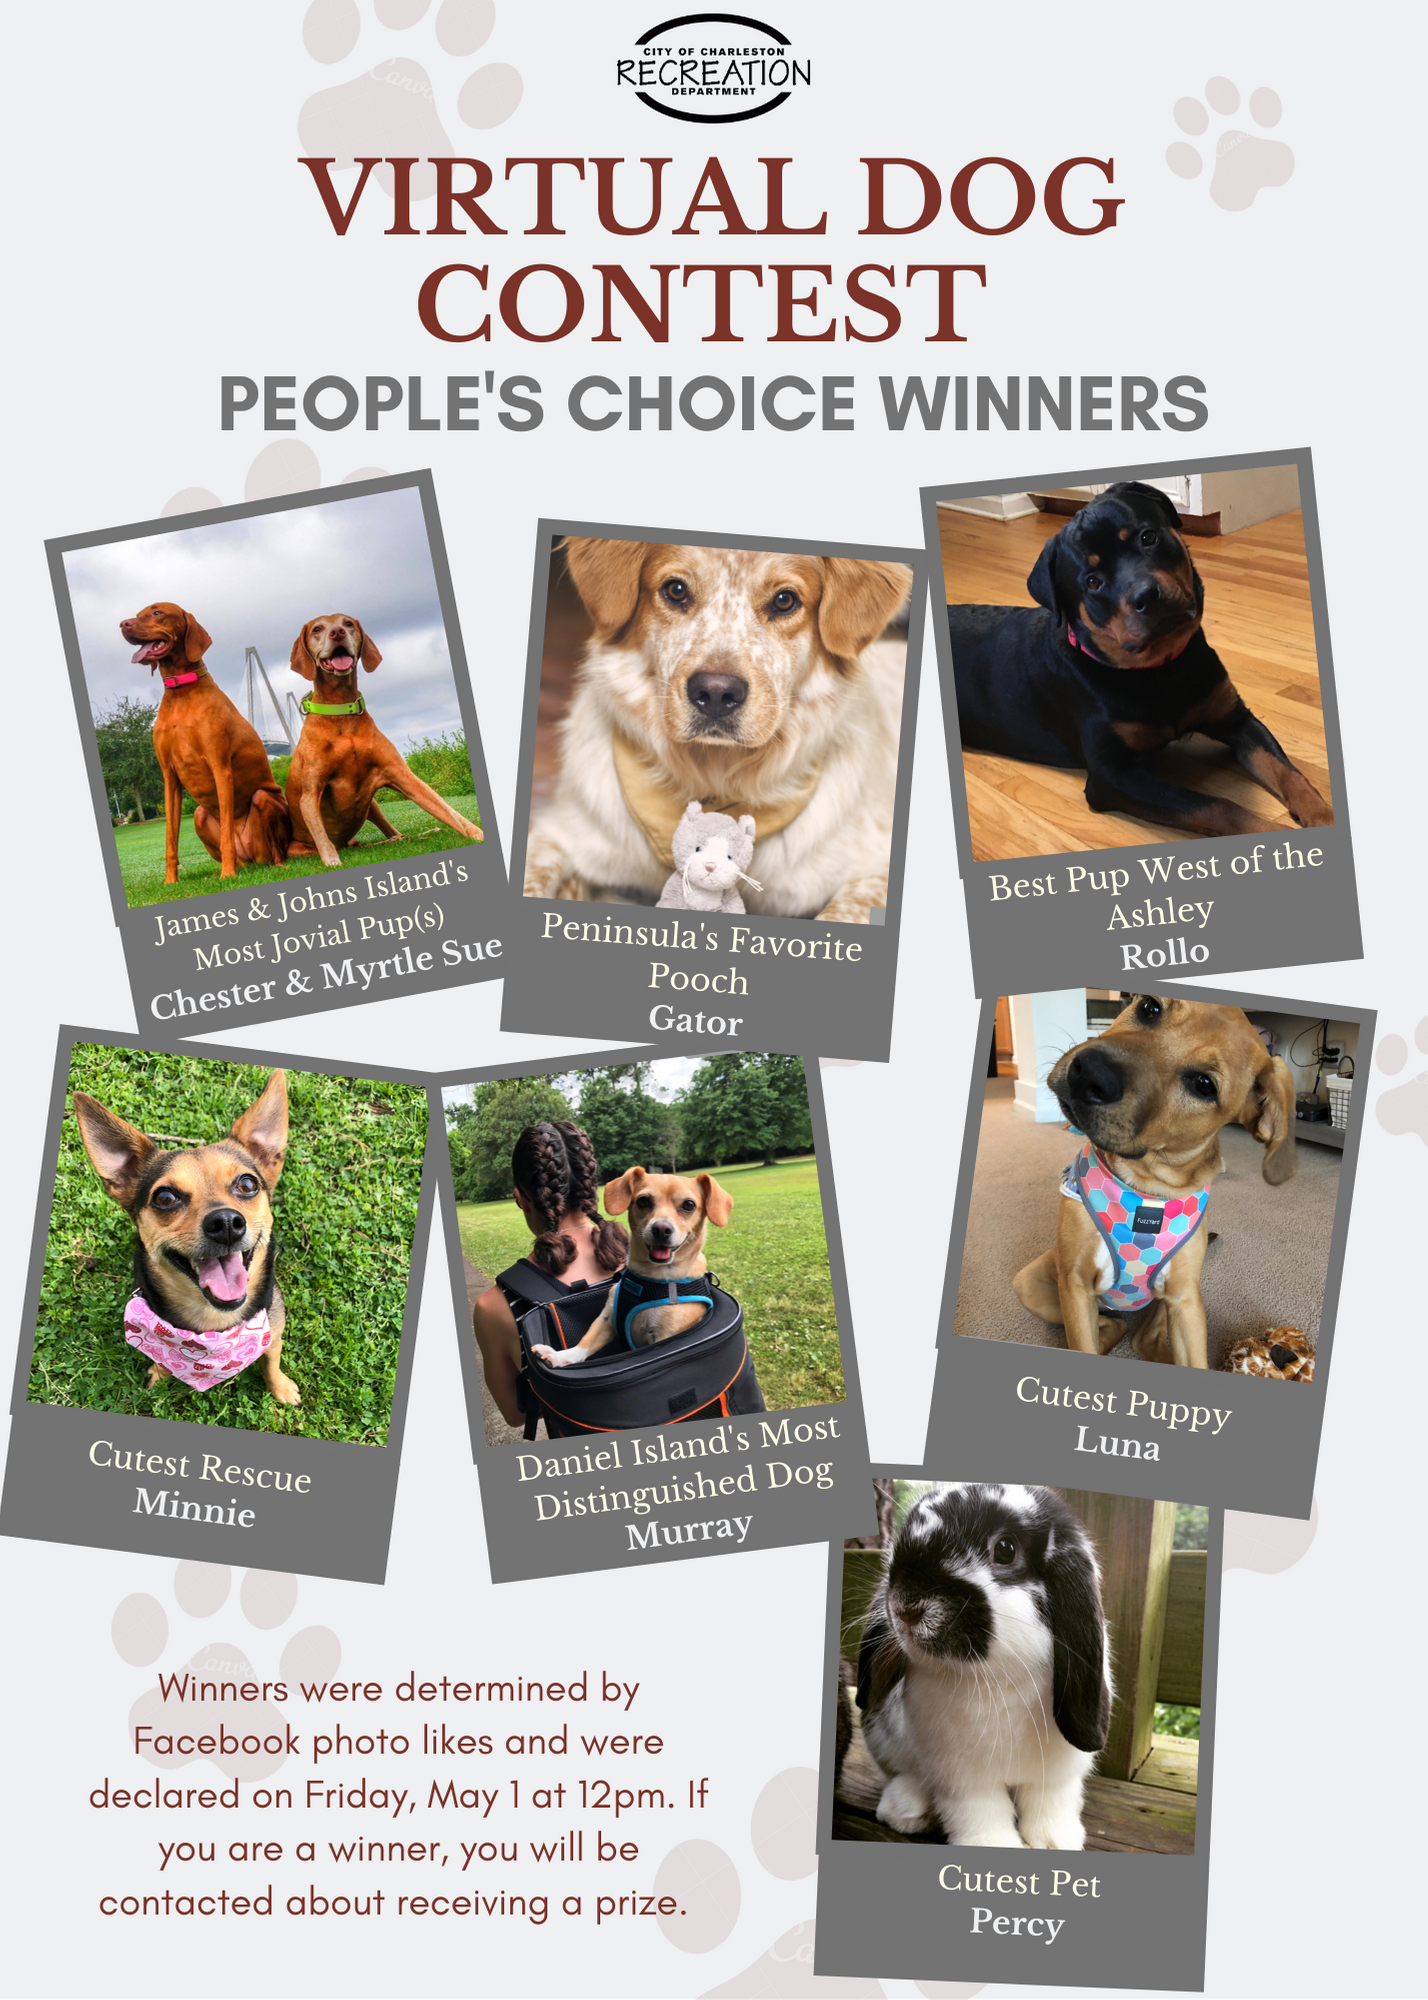 Virtual Dog Contest - Peoples Choice Winners